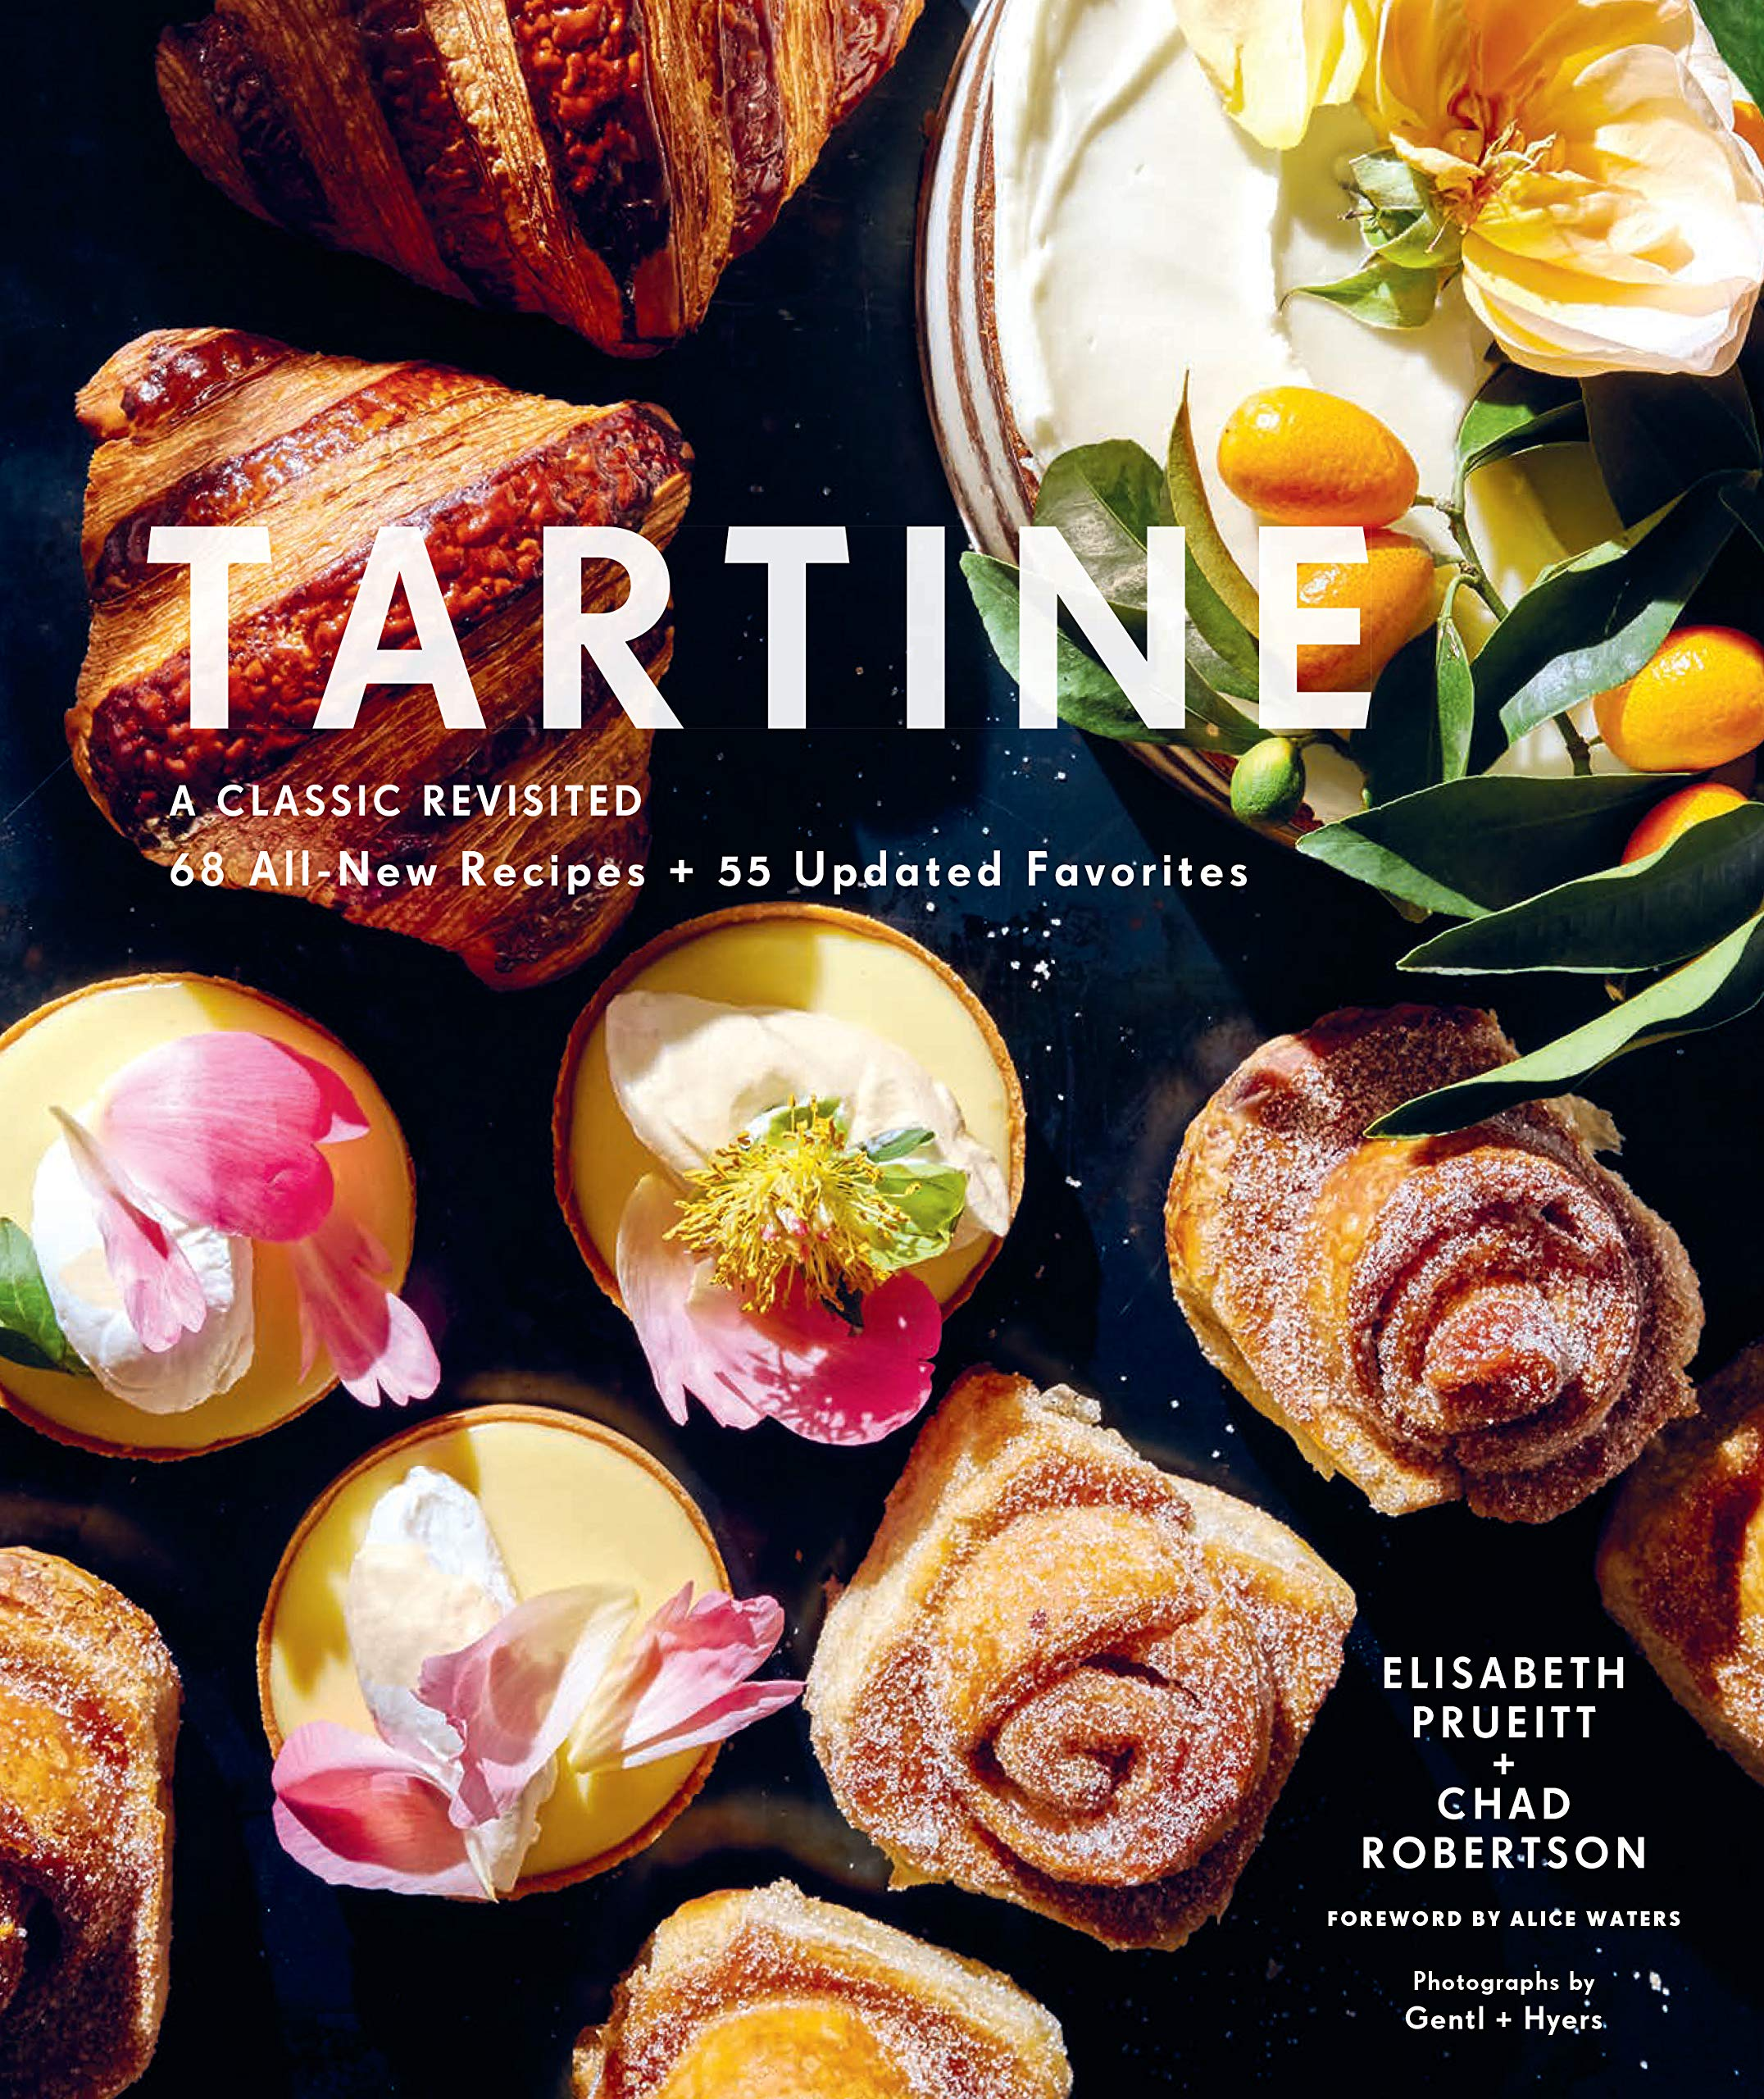 tartine-a-classic-revisited.jpg